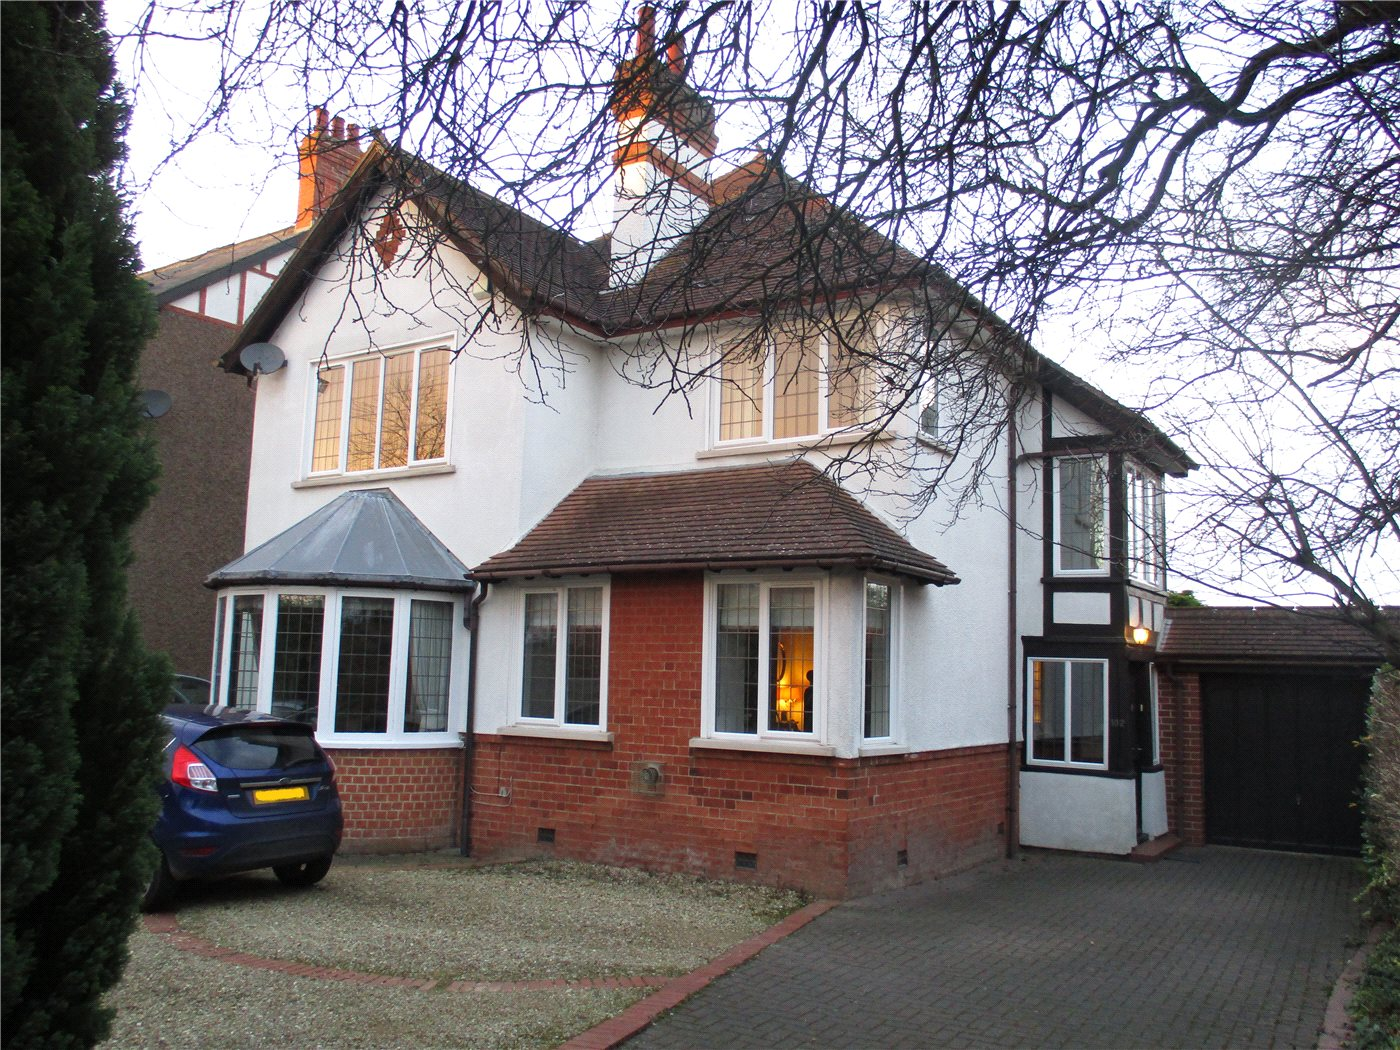 4 Bedrooms Detached House for sale in Barrowby Road, Grantham, NG31